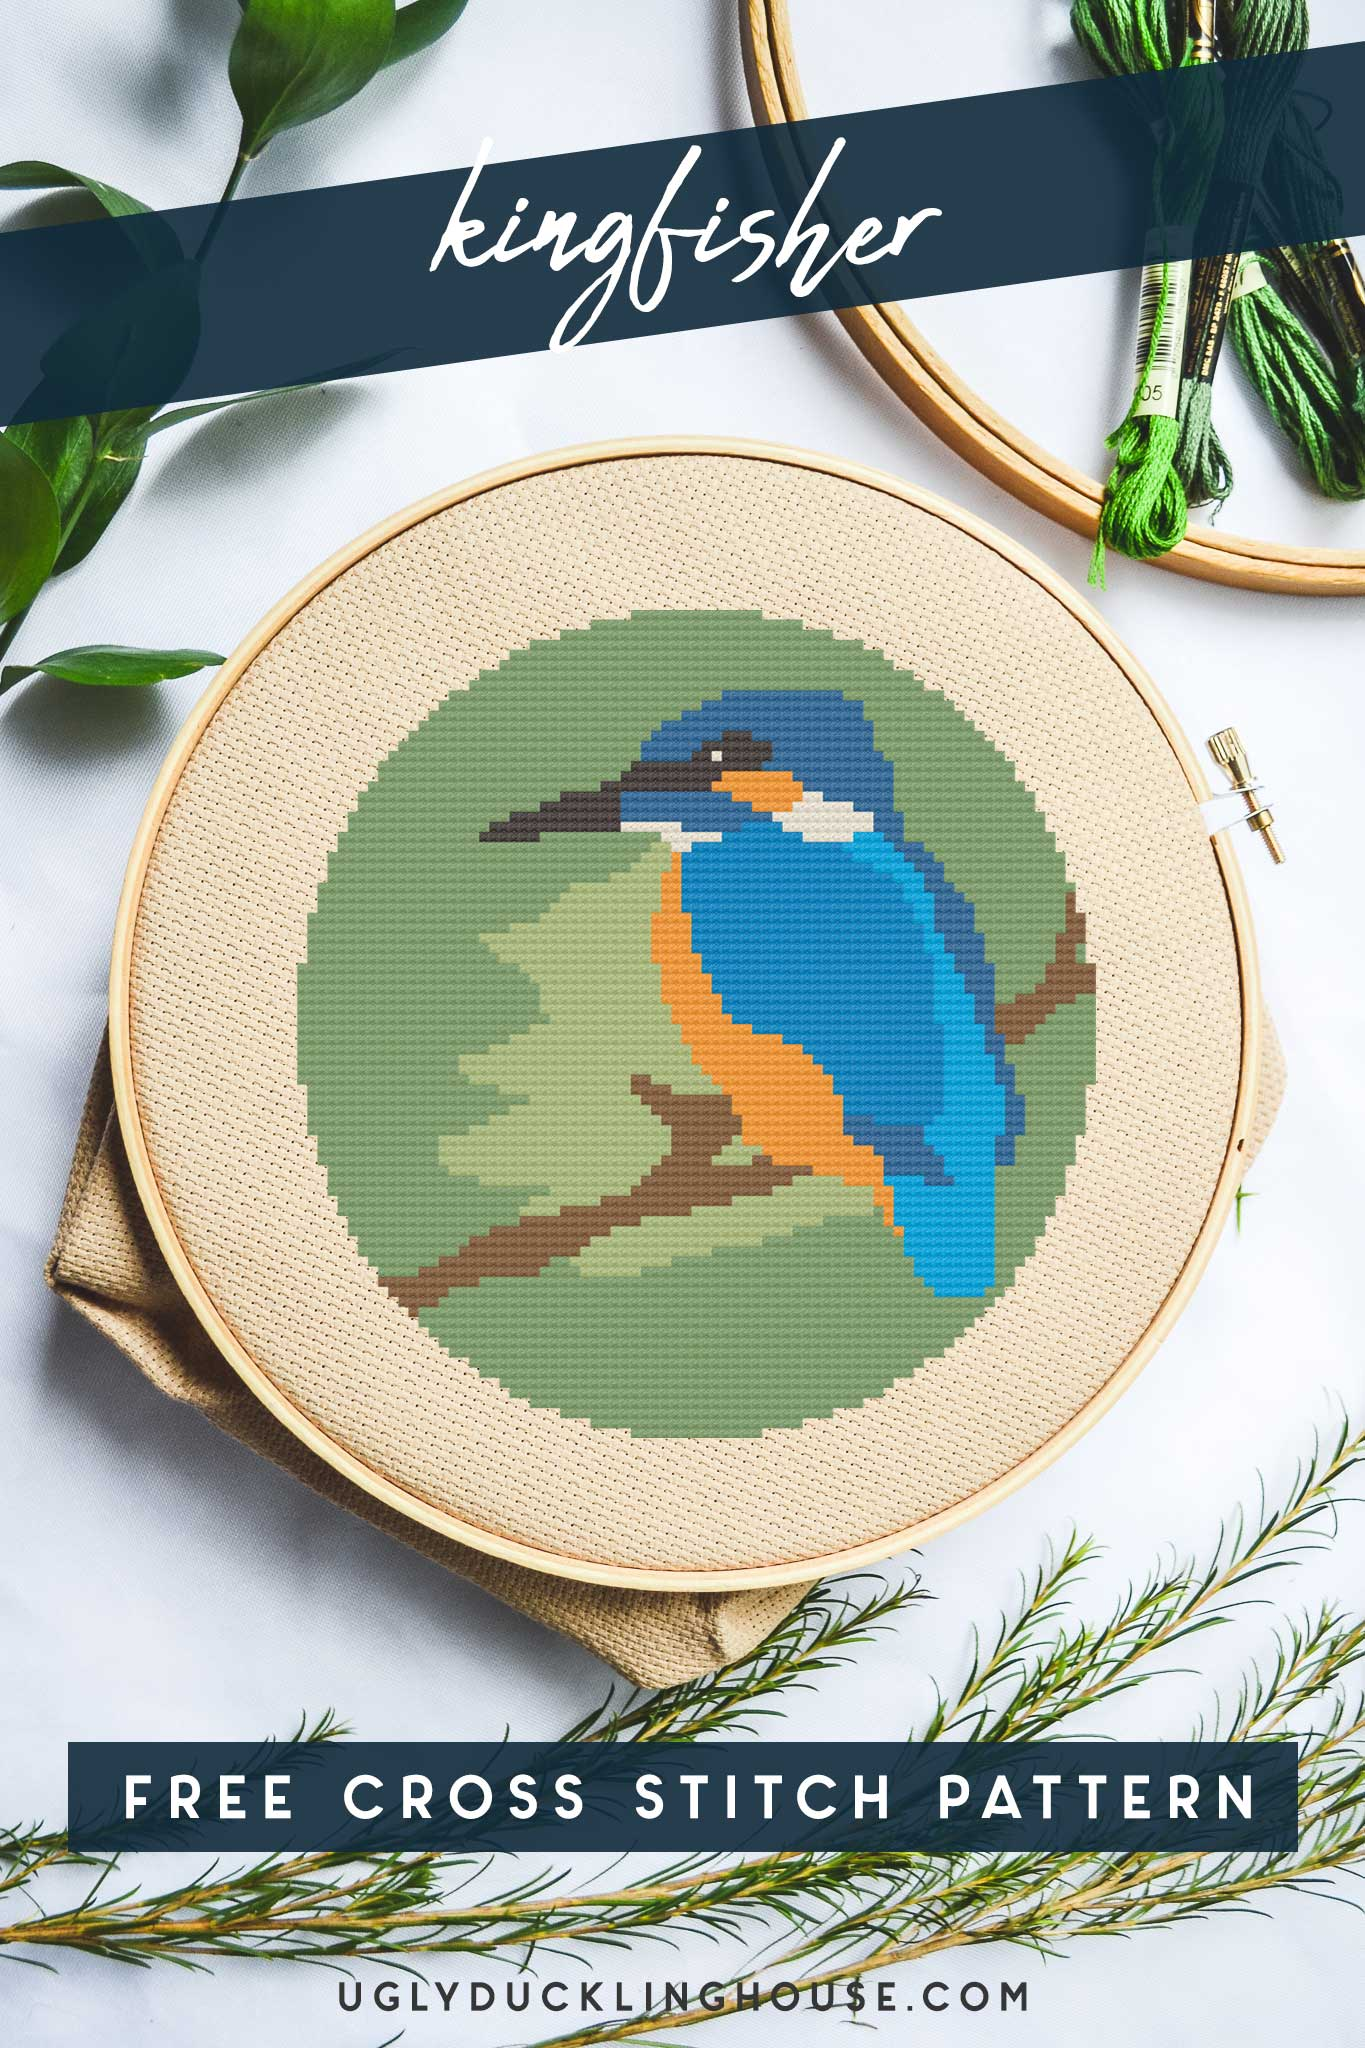 kingfisher bird free cross stitch pattern